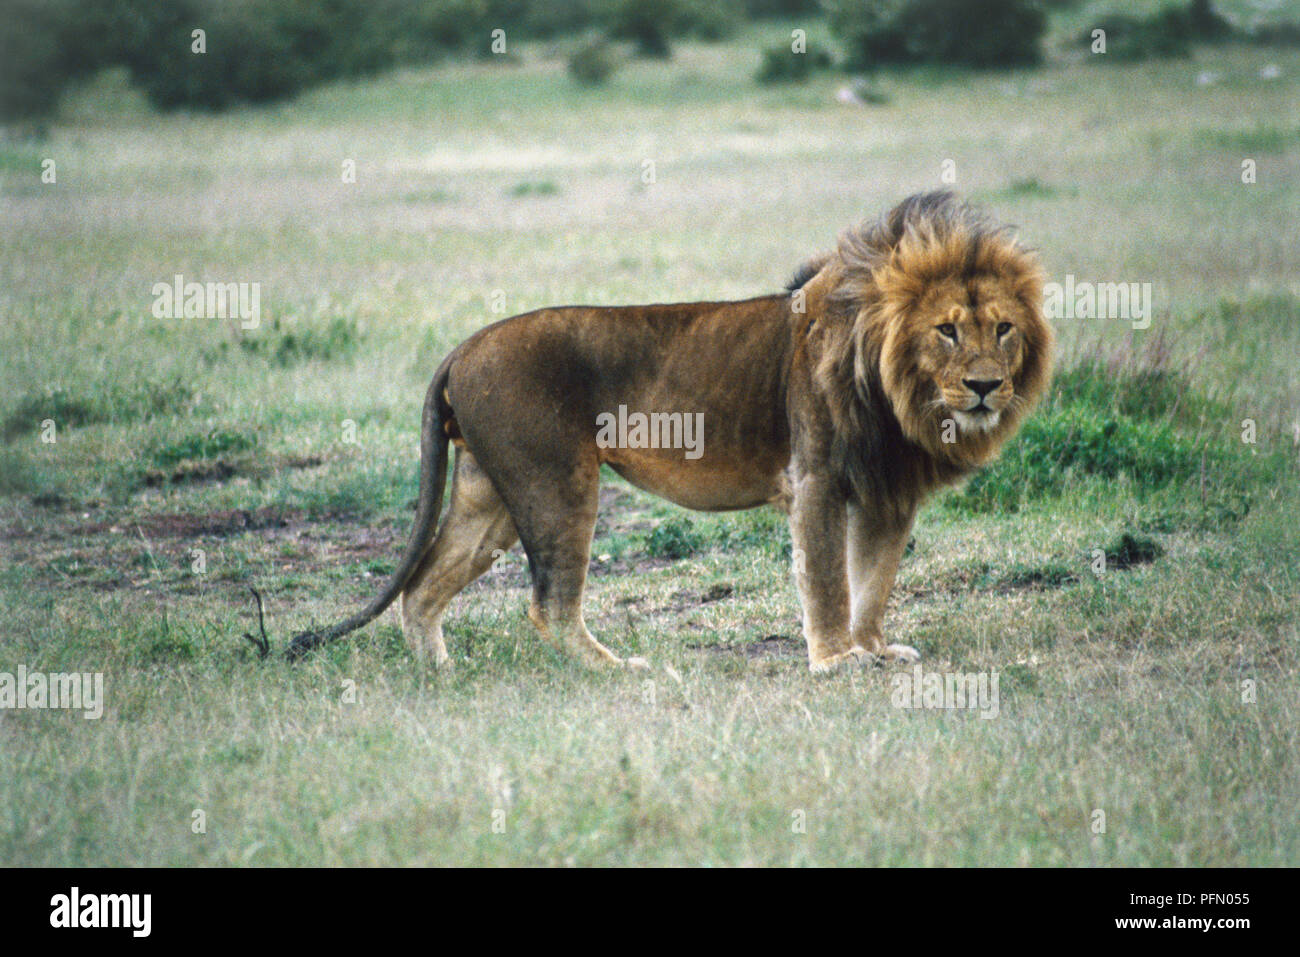 Male Lion, Panthera leo, standing, large golden mane, white chin, long tail, side view, open grassland in background. - Stock Image